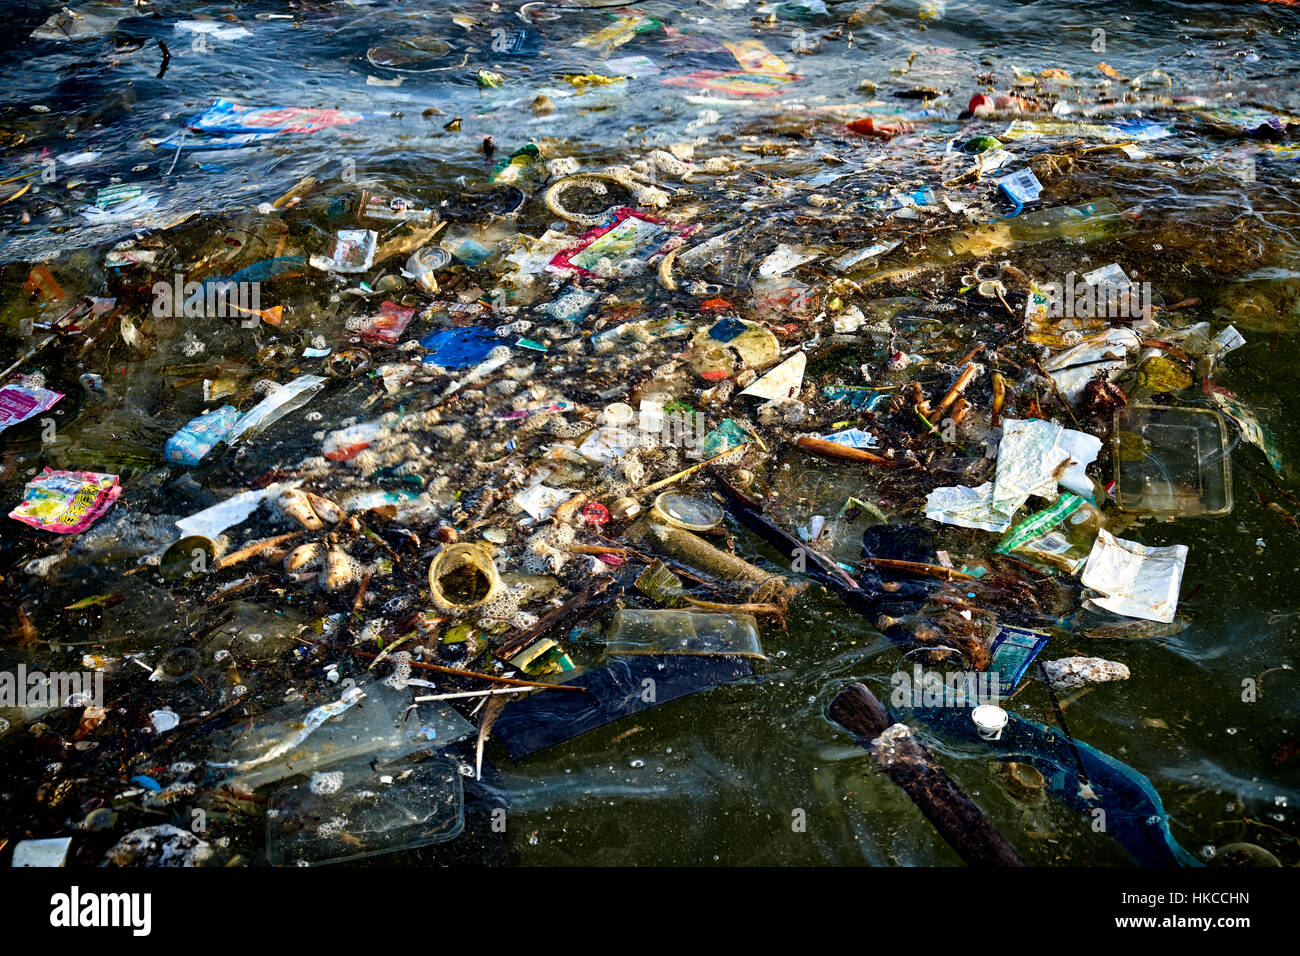 HONG KONG - MAY 25: Marine pollution around Hung Shing Ye beach on Lamma Island just off Hong Kong on May 25, 2014. - Stock Image